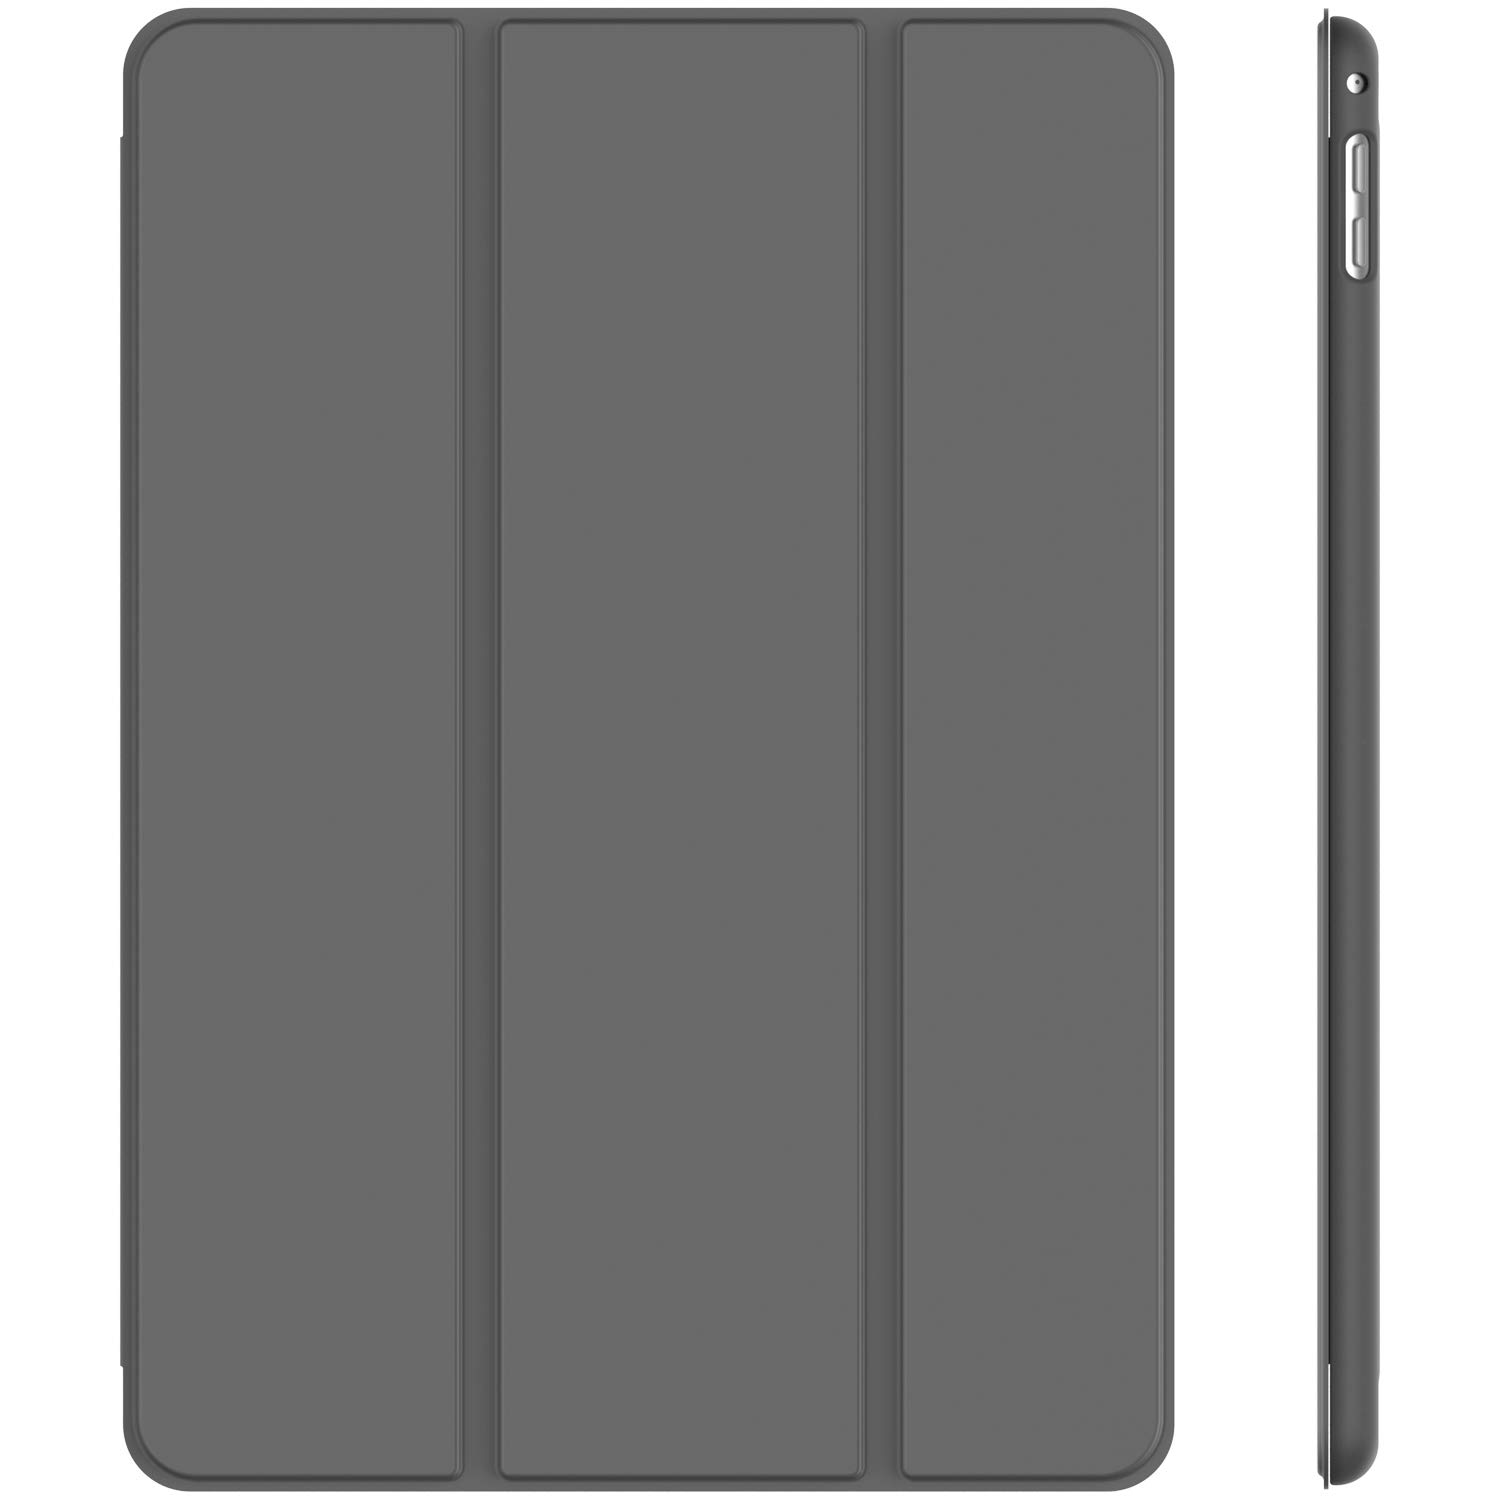 JETech Case for iPad Mini 4, Smart Cover with Auto Sleep/Wake, Dark Grey